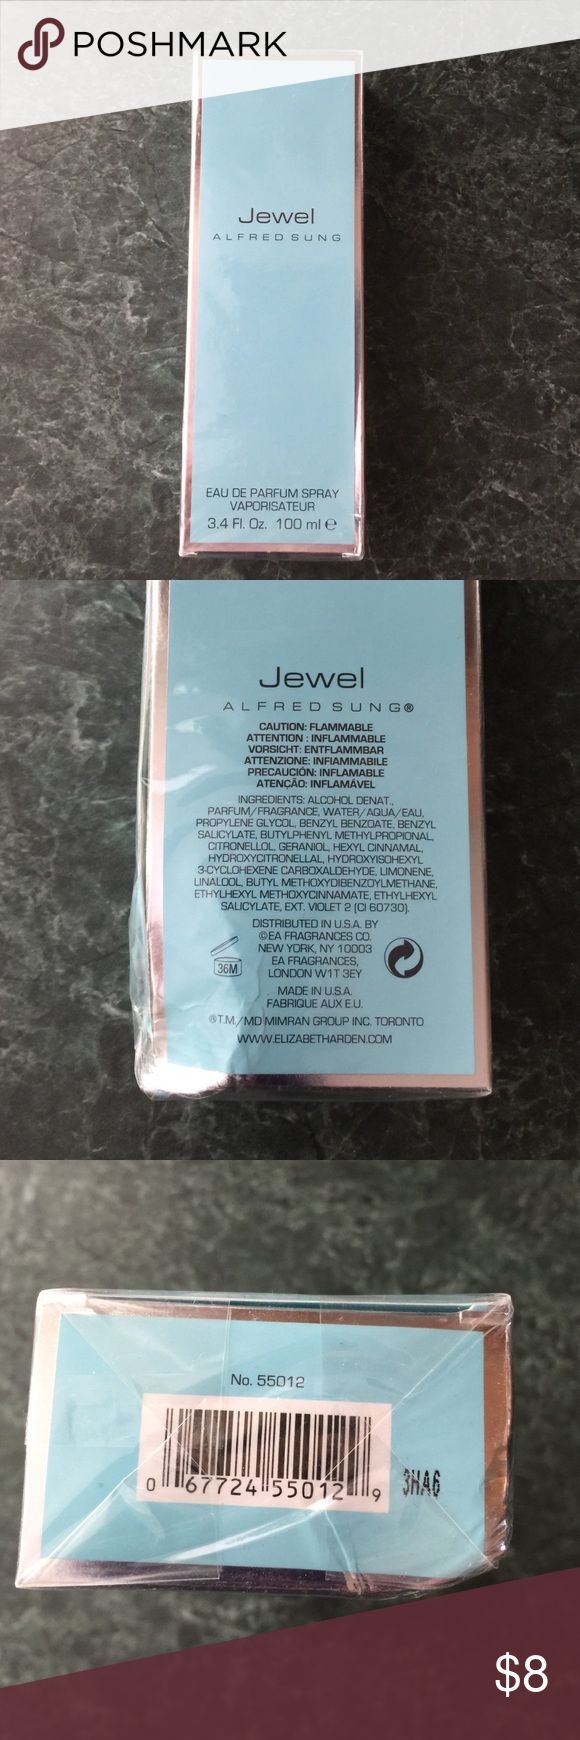 "New in Box ""Jewel"" by Alfred Sung Brand new ""Jewel"" by Alfred Sung perfume wrapped in box. Box has damage on the bottom corner - see pictures. Please reach out with any questions!! Alfred Sung Makeup"